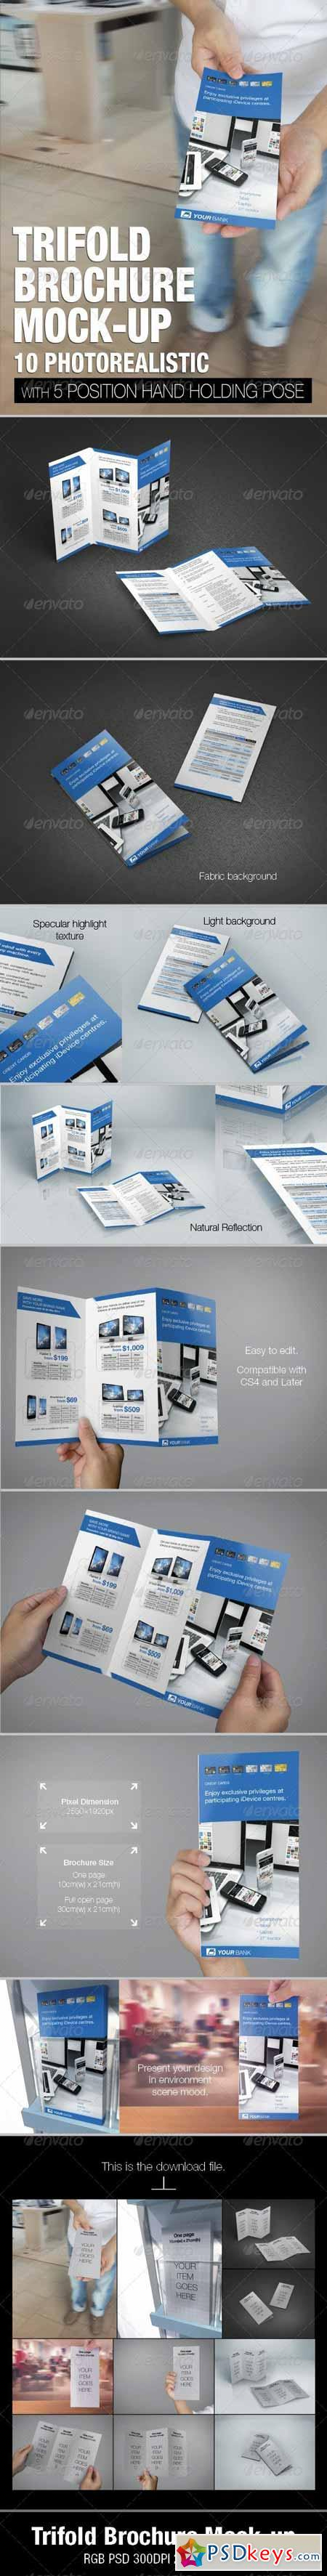 MOCK-UP » page 186 » Free Download Photoshop Vector Stock